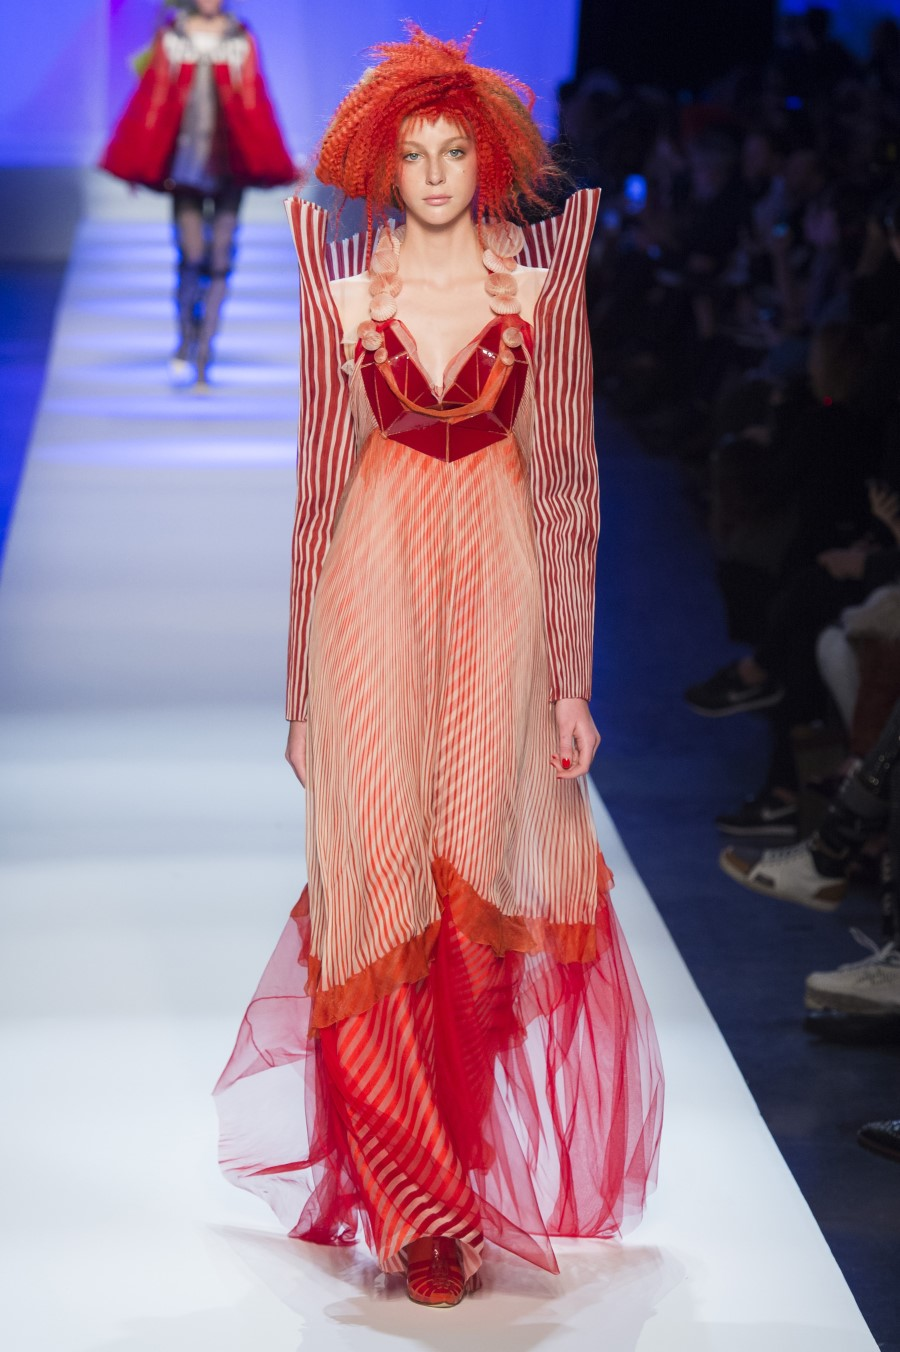 Jean Paul Gaultier Haute Couture Spring Summer 2019